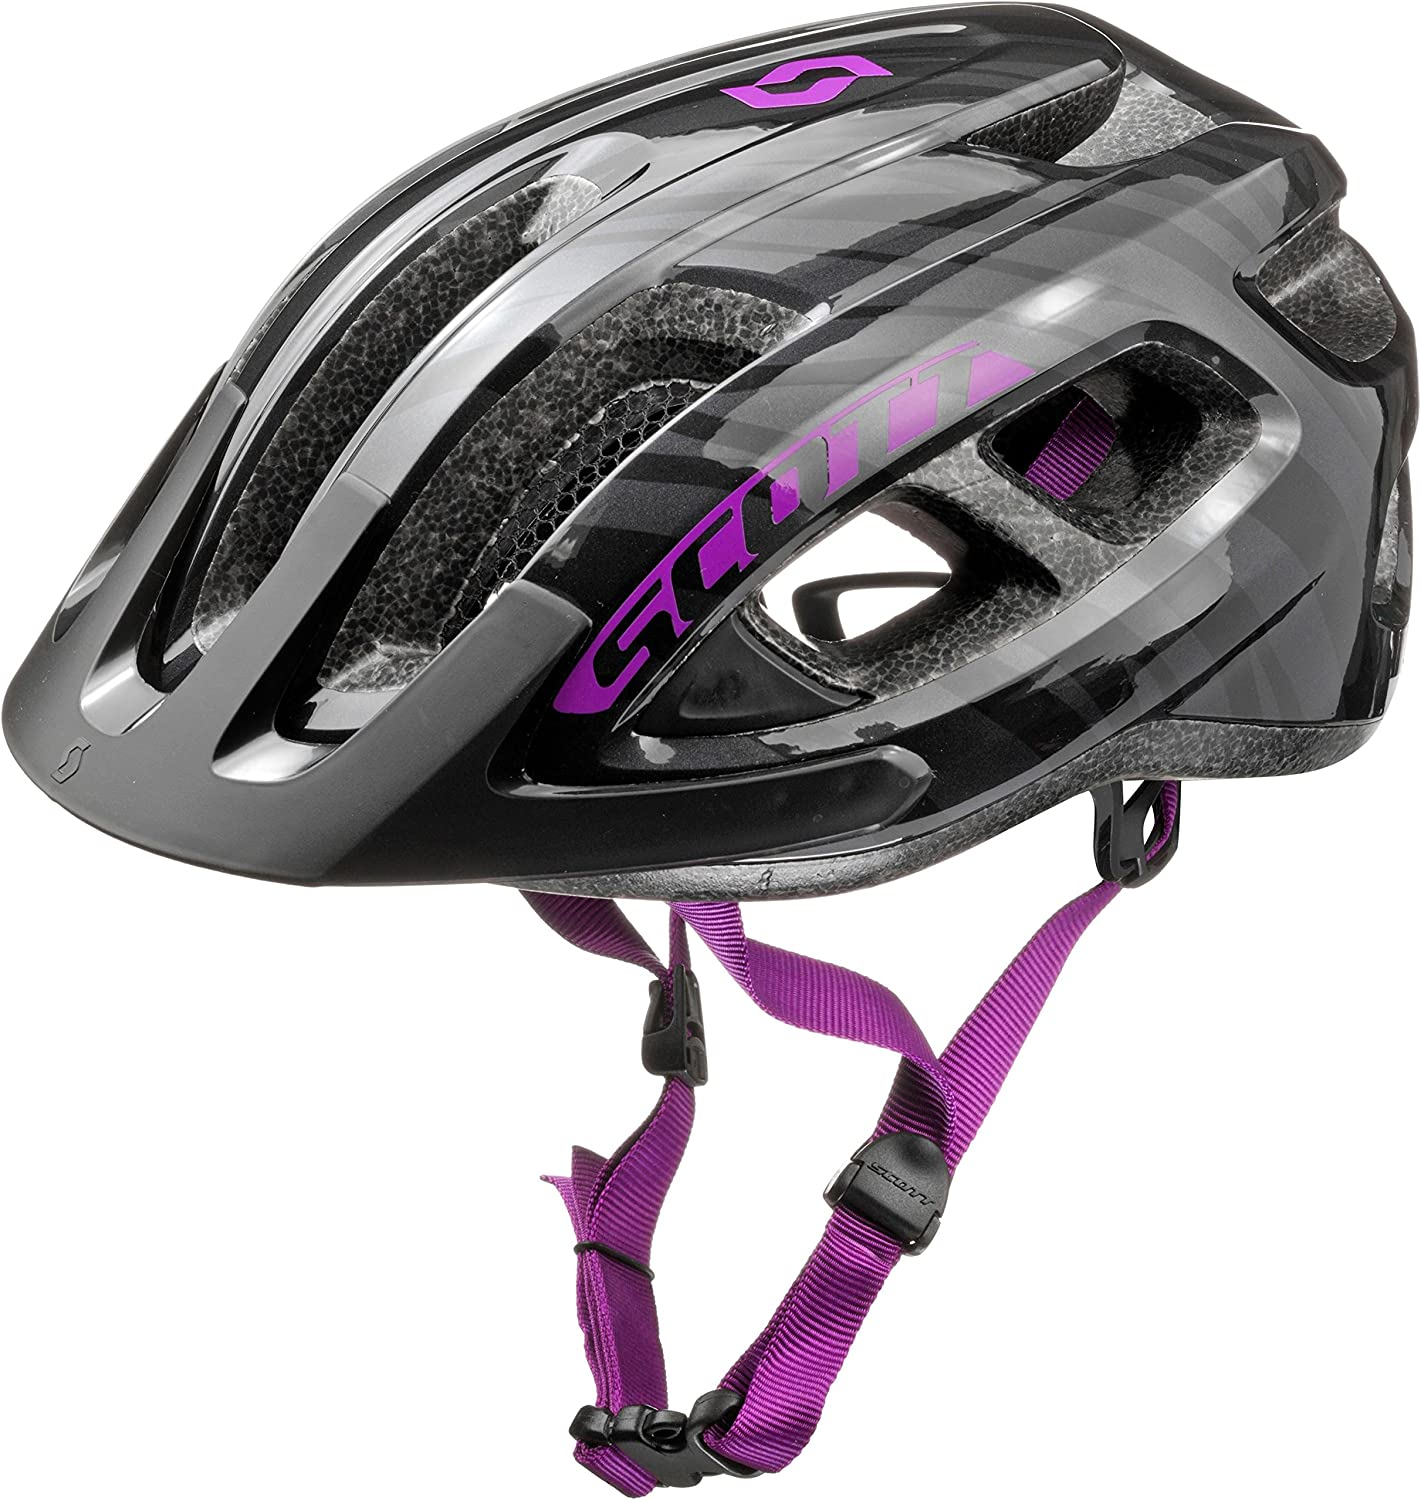 Scott Casco Para Bicicleta / Casco Para Mountain Bike \